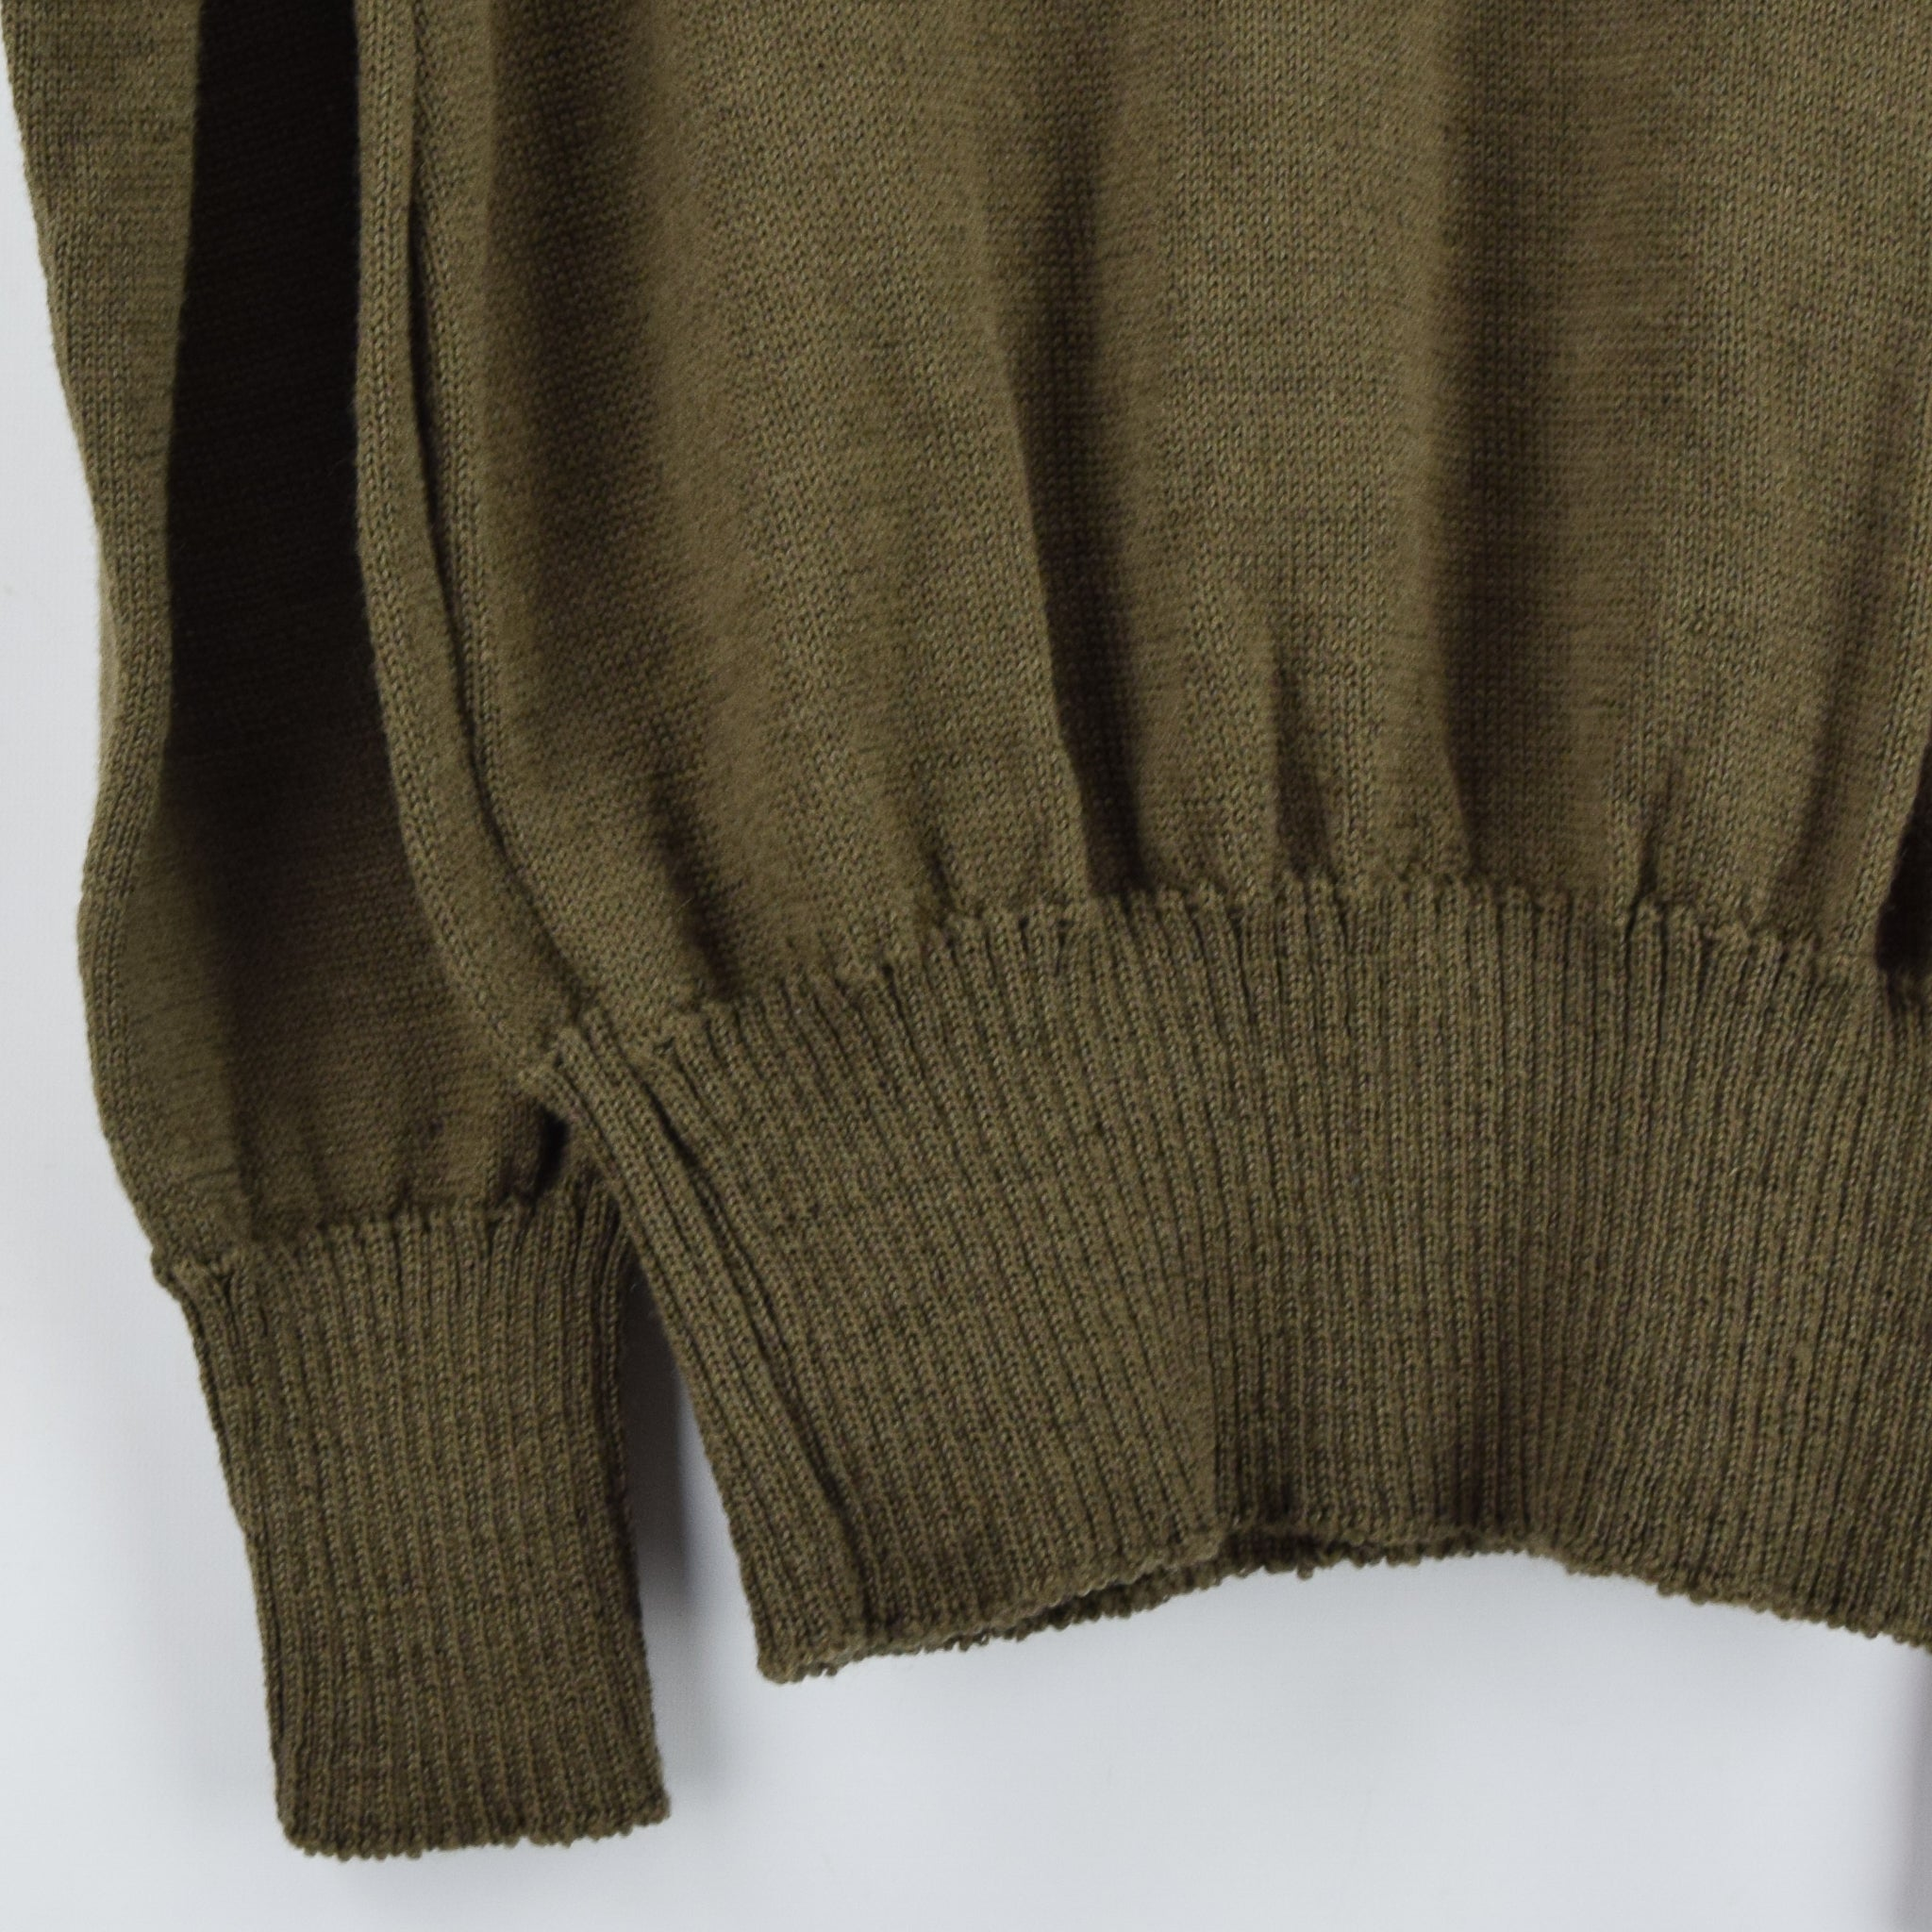 Vintage 60s US Army Military Sweater Olive Wool USA Made Button Pullover M back hem